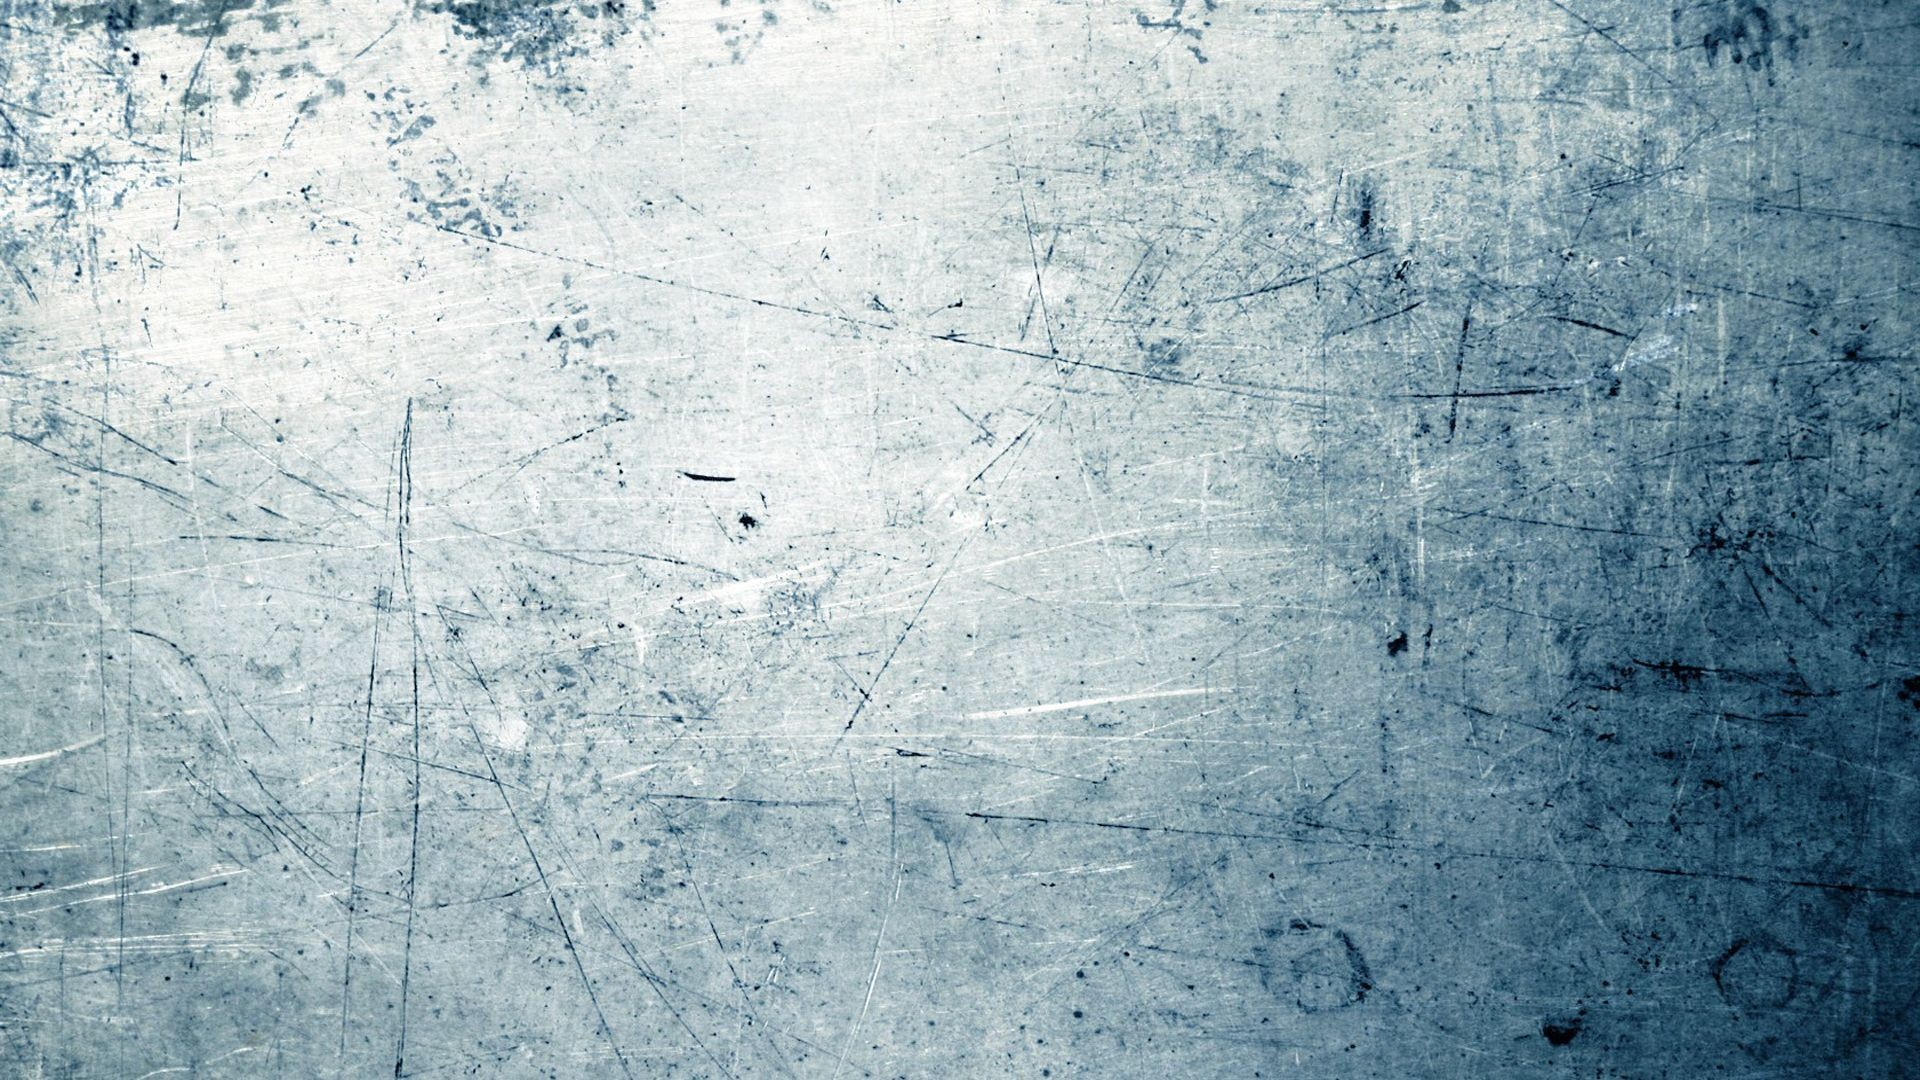 19 tumblr grunge backgrounds download free cool high - White grunge background 1920x1080 ...